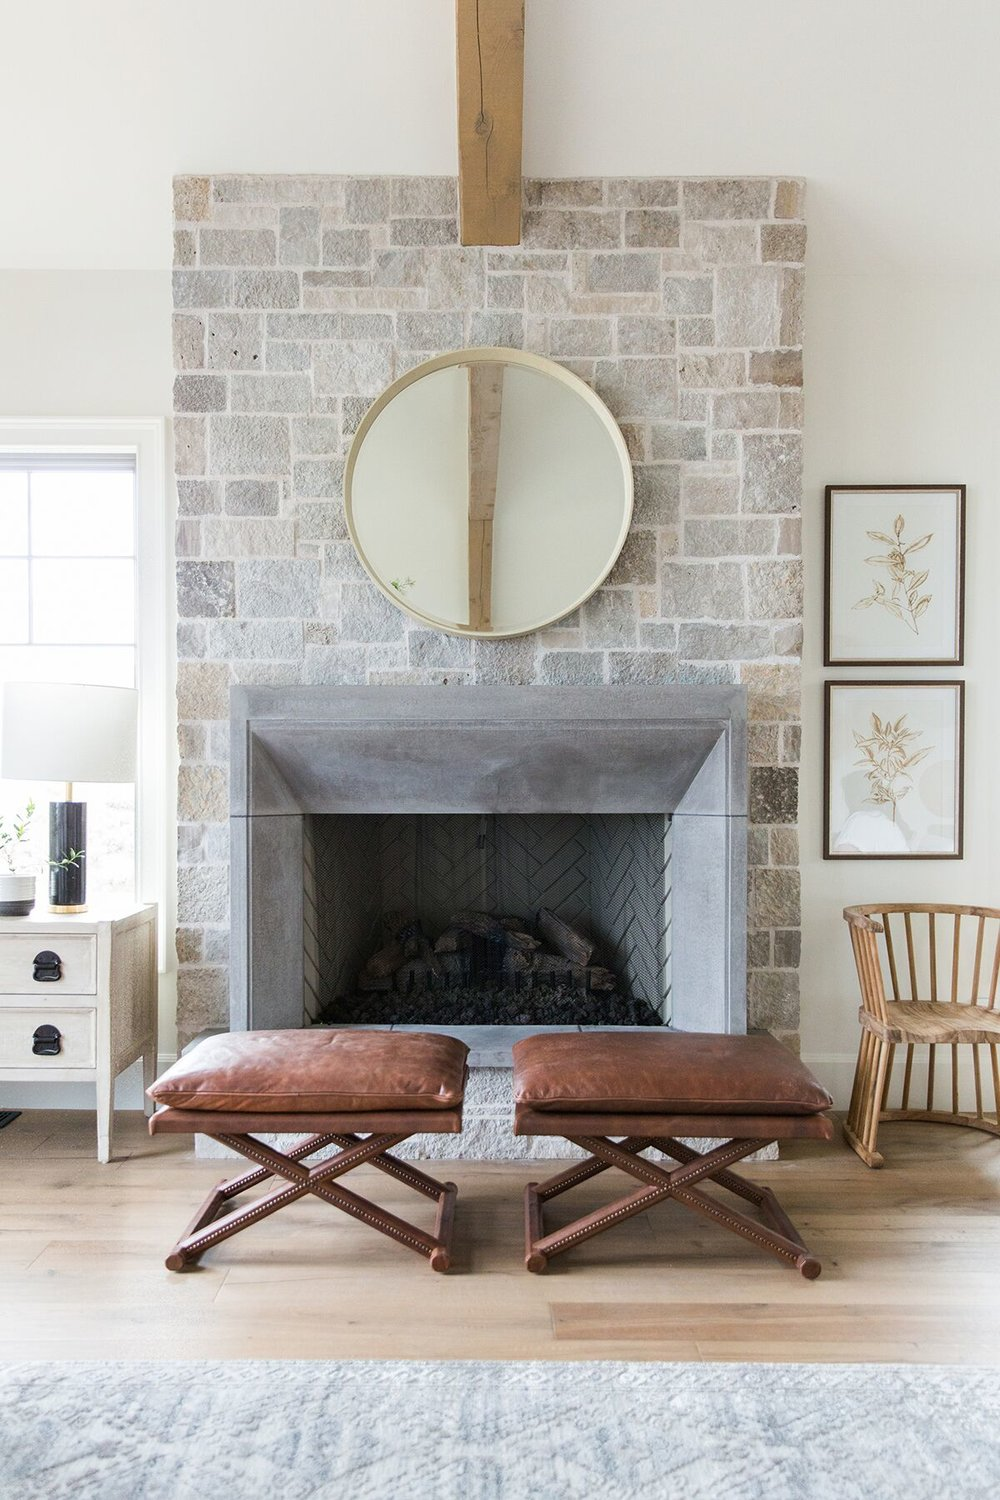 Stone+fireplace+with+molded+brick,+leather+x-stools,+seating+area+by+fireplace+in+mountain+home+-+Studio+McGee+Design.jpg